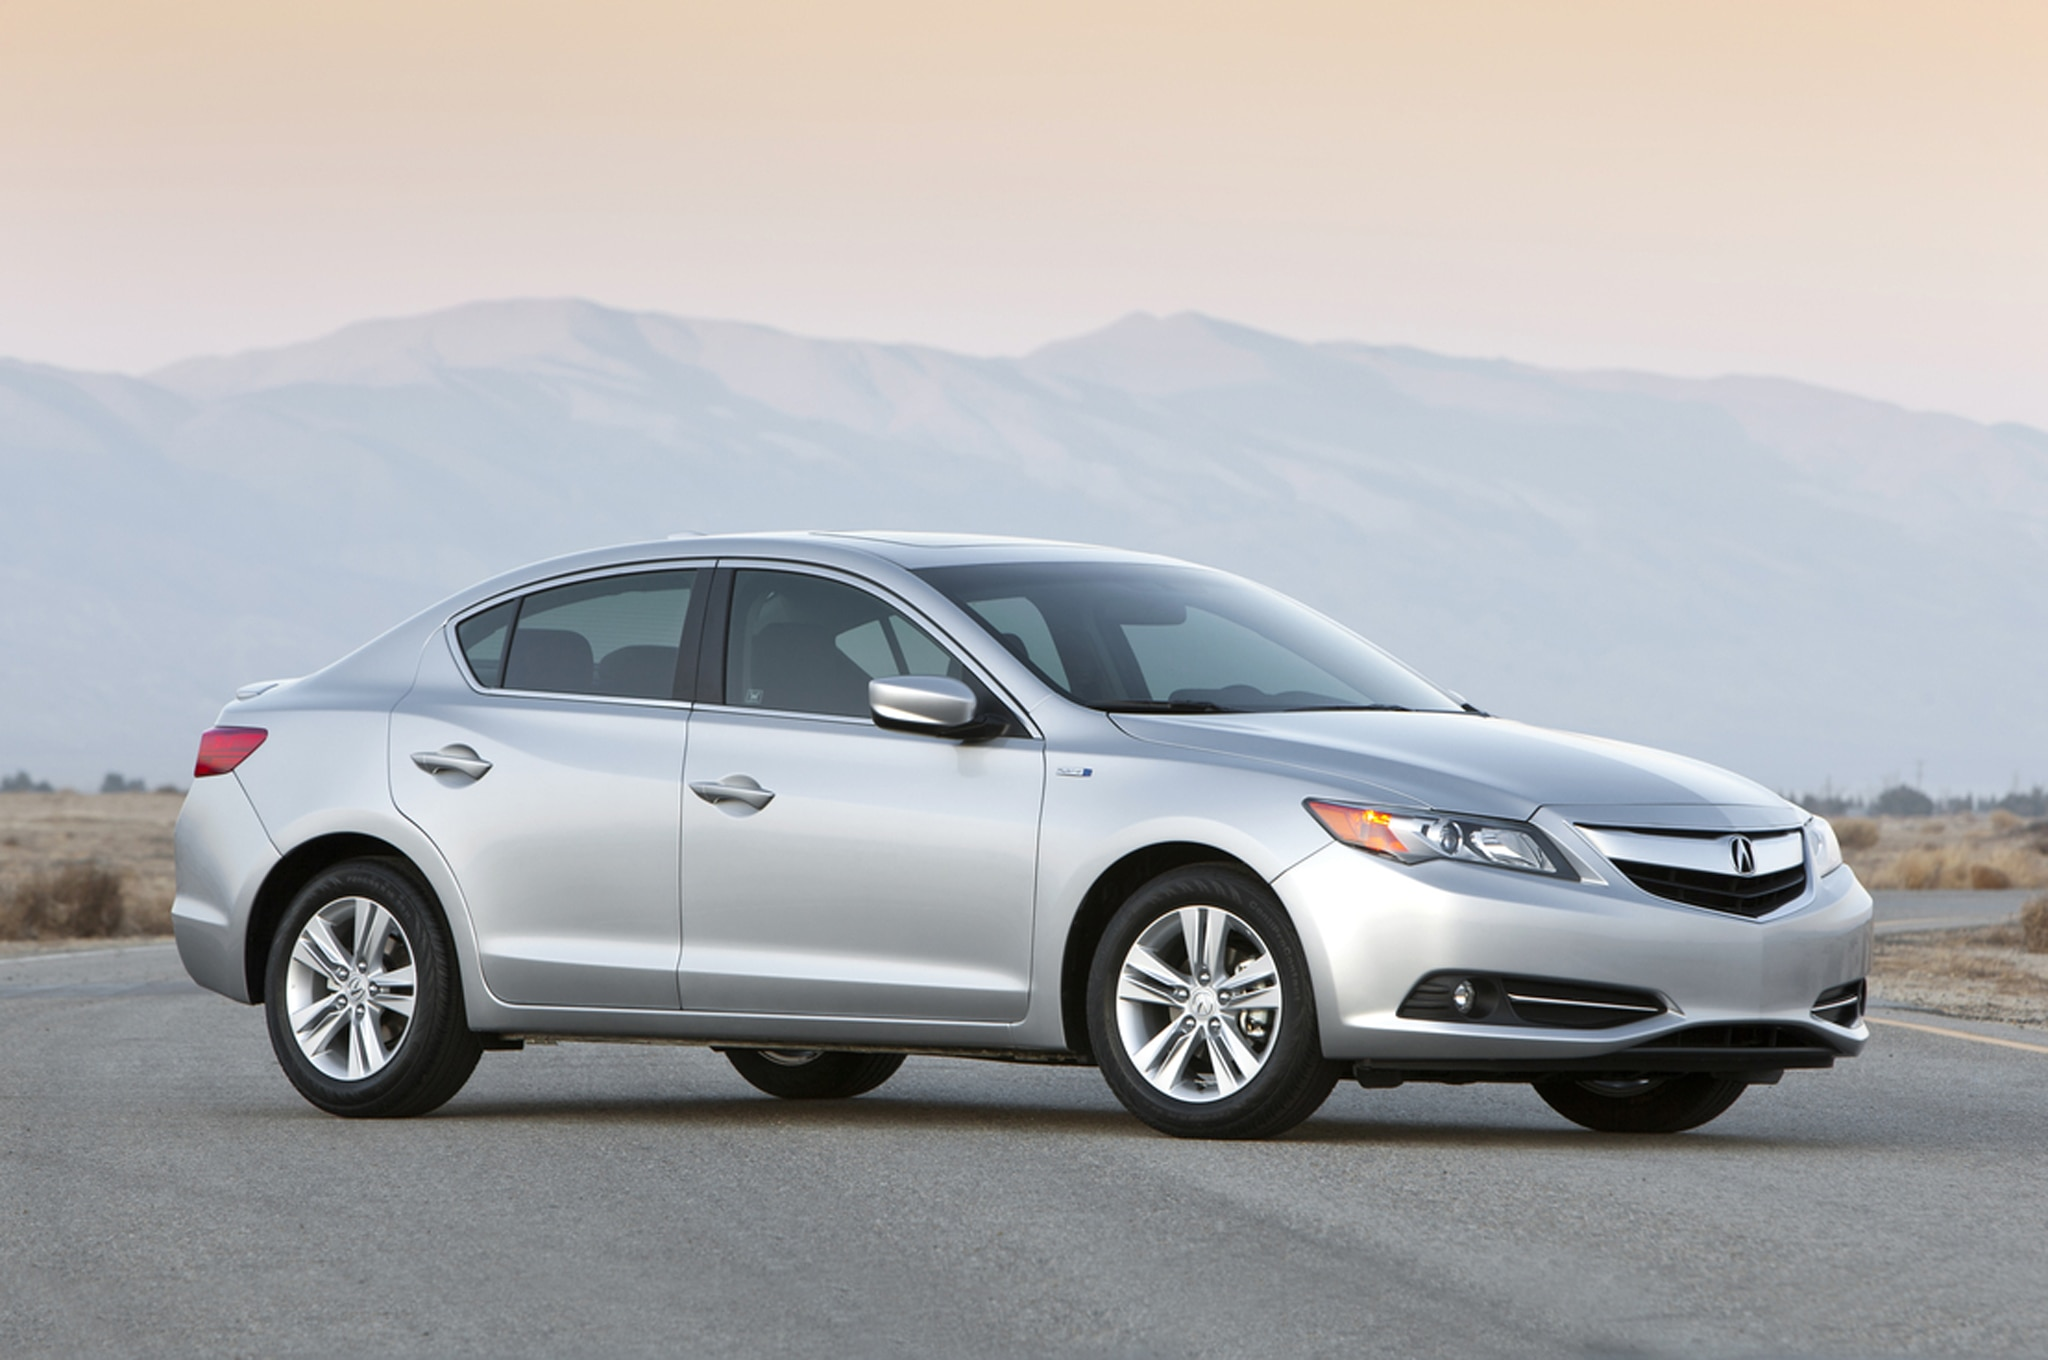 2014 Acura ILX Hybrid Front Side1